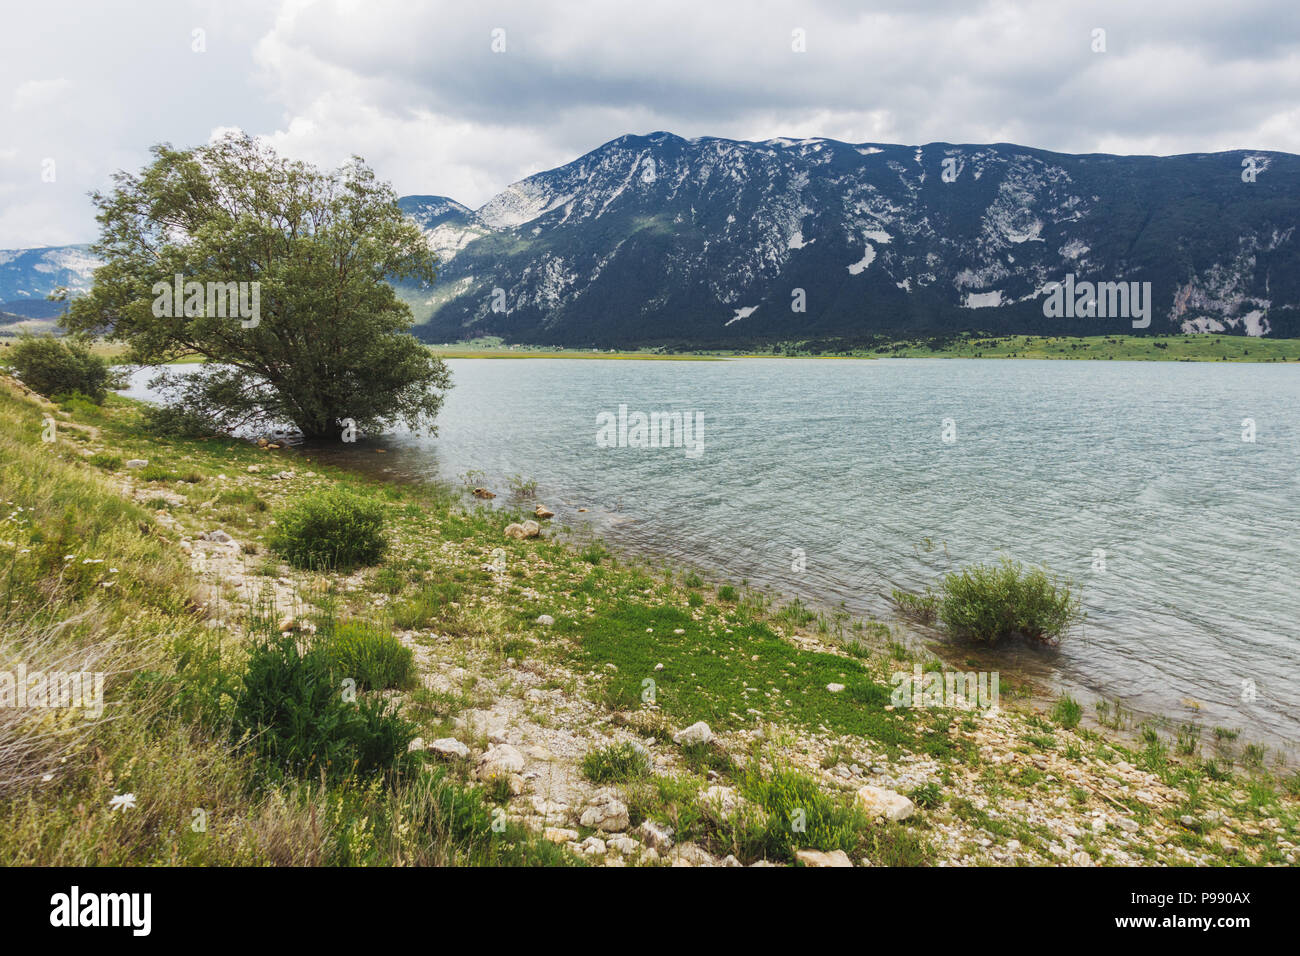 An overcast day next to the calm waters of Blidinje Jezero, the largest lake Bosnia and Herzegovina - Stock Image